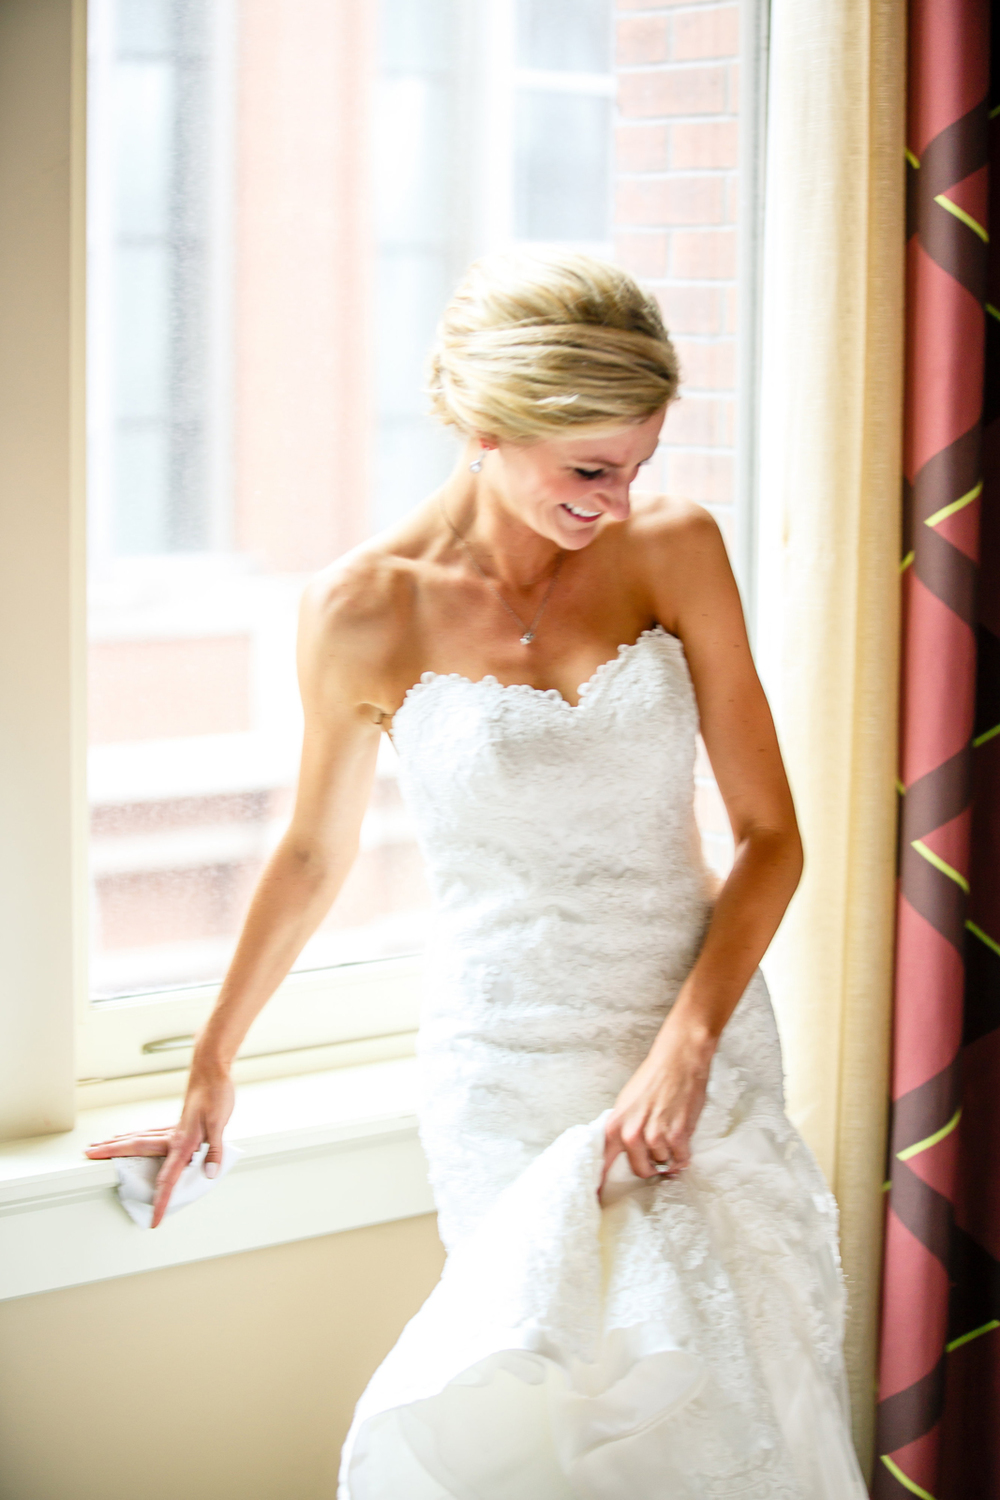 Bride Getting Ready Embassy Suites Downtown St. Louis Wedding Photographers by Oldani Photography 3.jpg